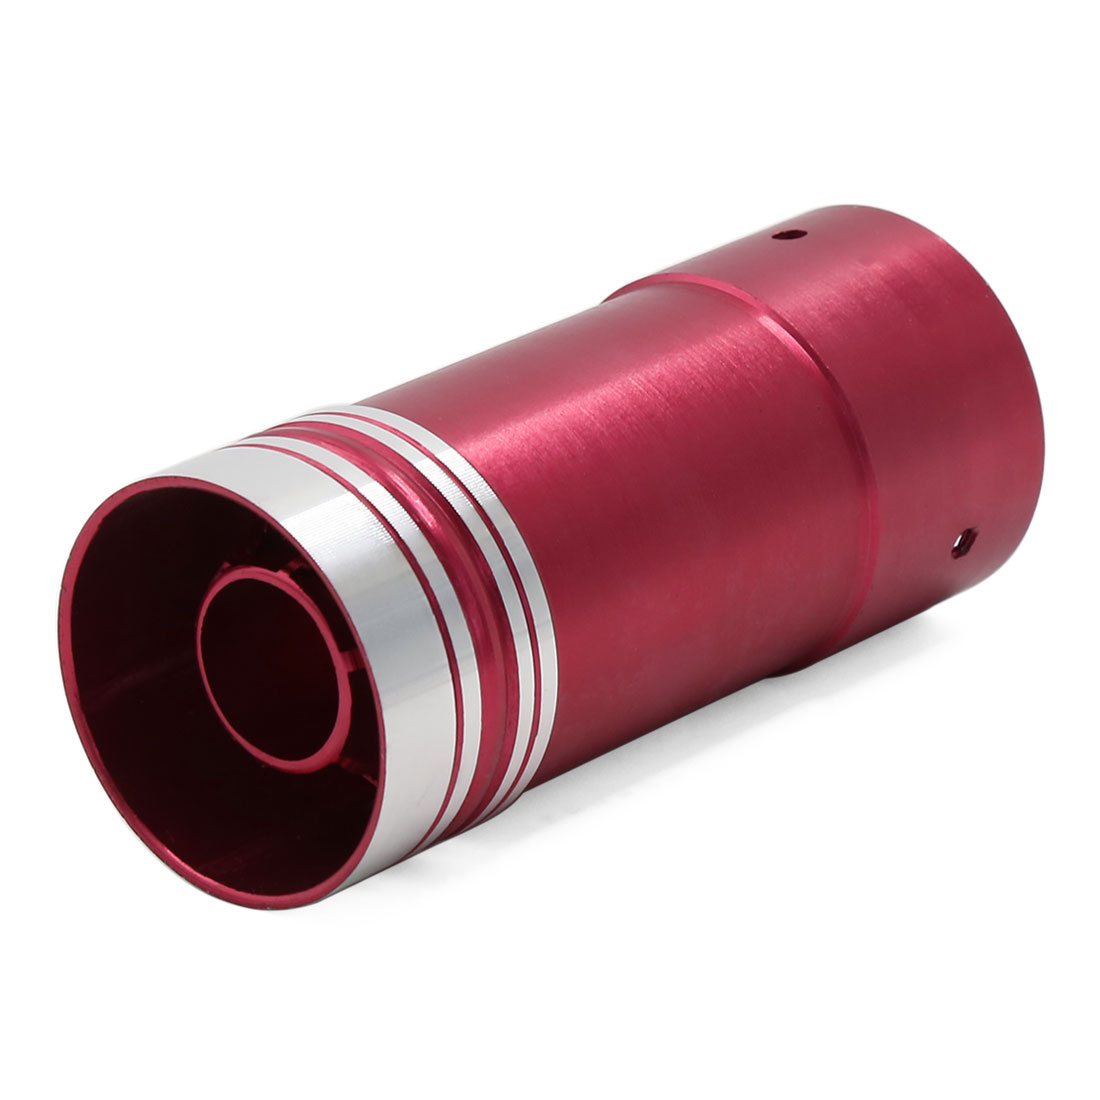 Unique Bargains Universal Red Aluminum Straight Round Tip Car Exhaust Pipe Muffler Silencer